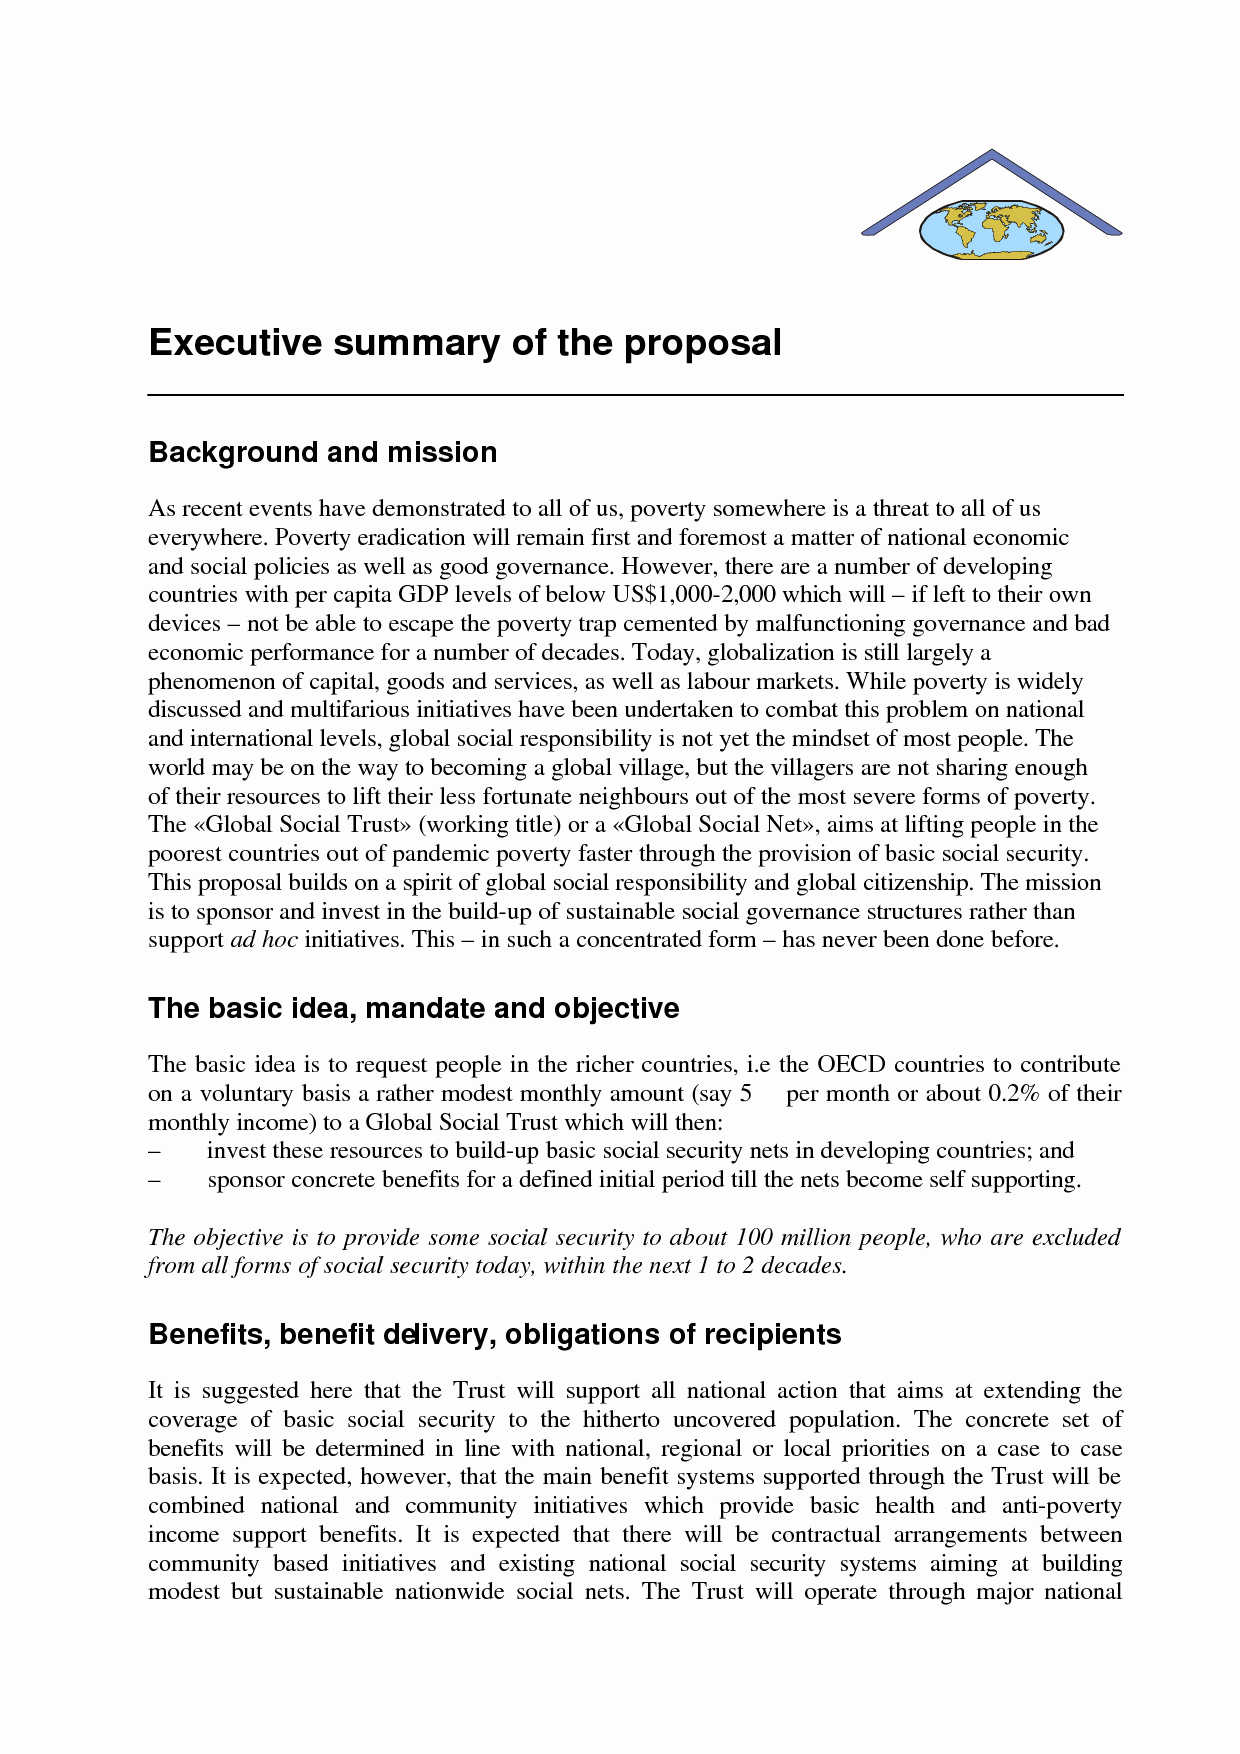 Executive Summary Sample for Proposal Luxury Examples Of Executive Summary for A Business Plan